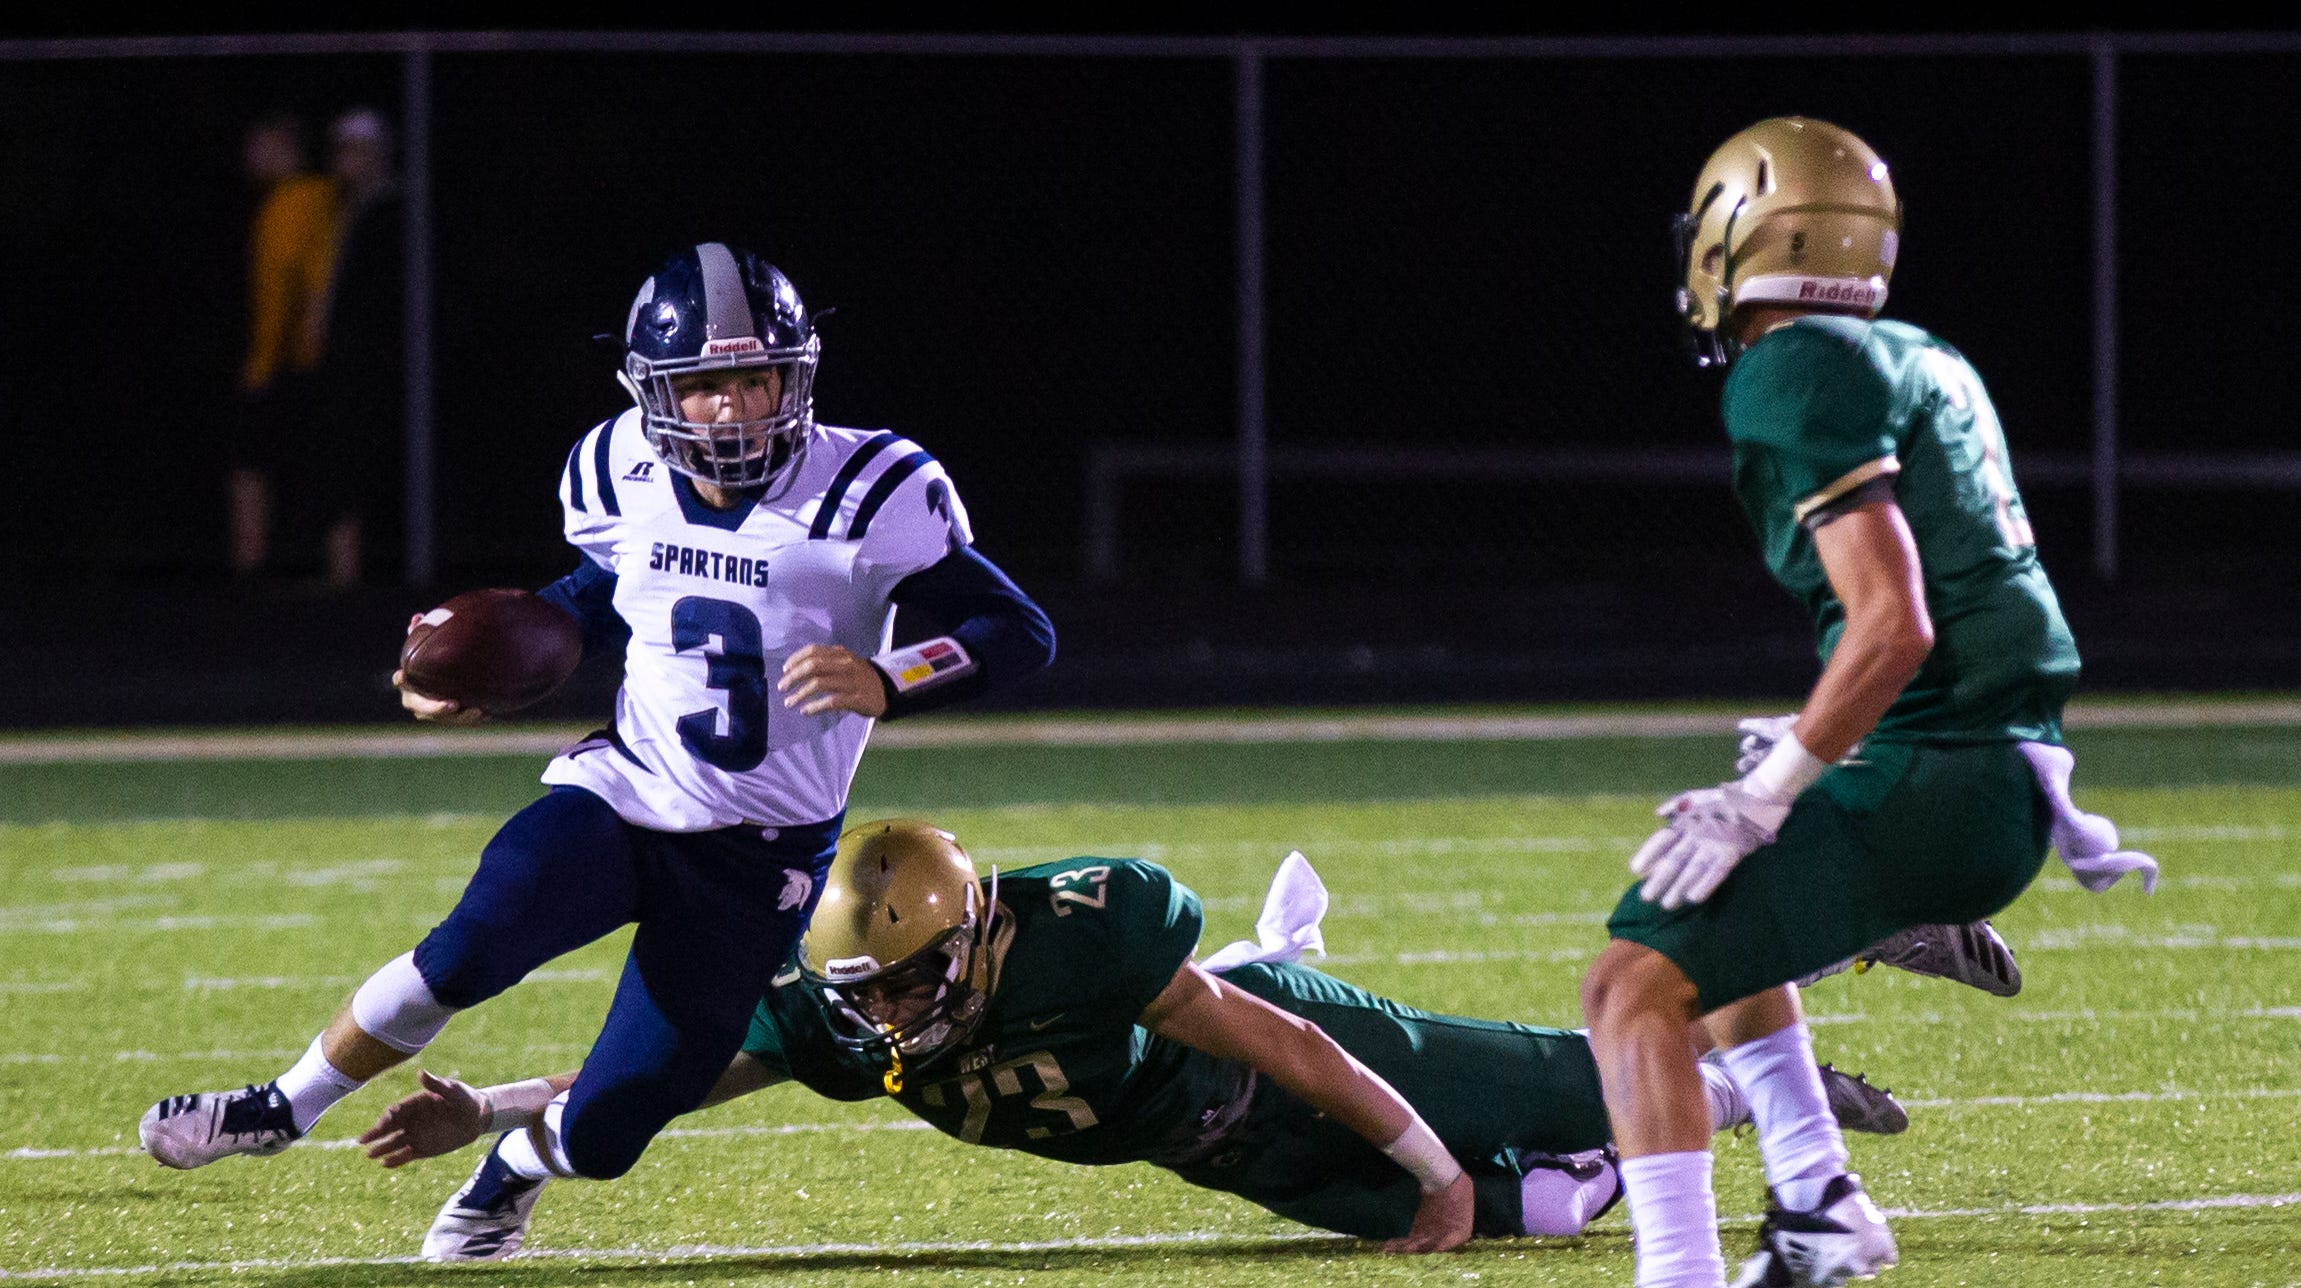 Pleasant Valley's Max Slavens (3) attempts to avoid a sack from Iowa City West's Brendan Mott(23) during a Class 4A varsity football game on Friday, Sept. 21, 2018, at Trojan Field in Iowa City.